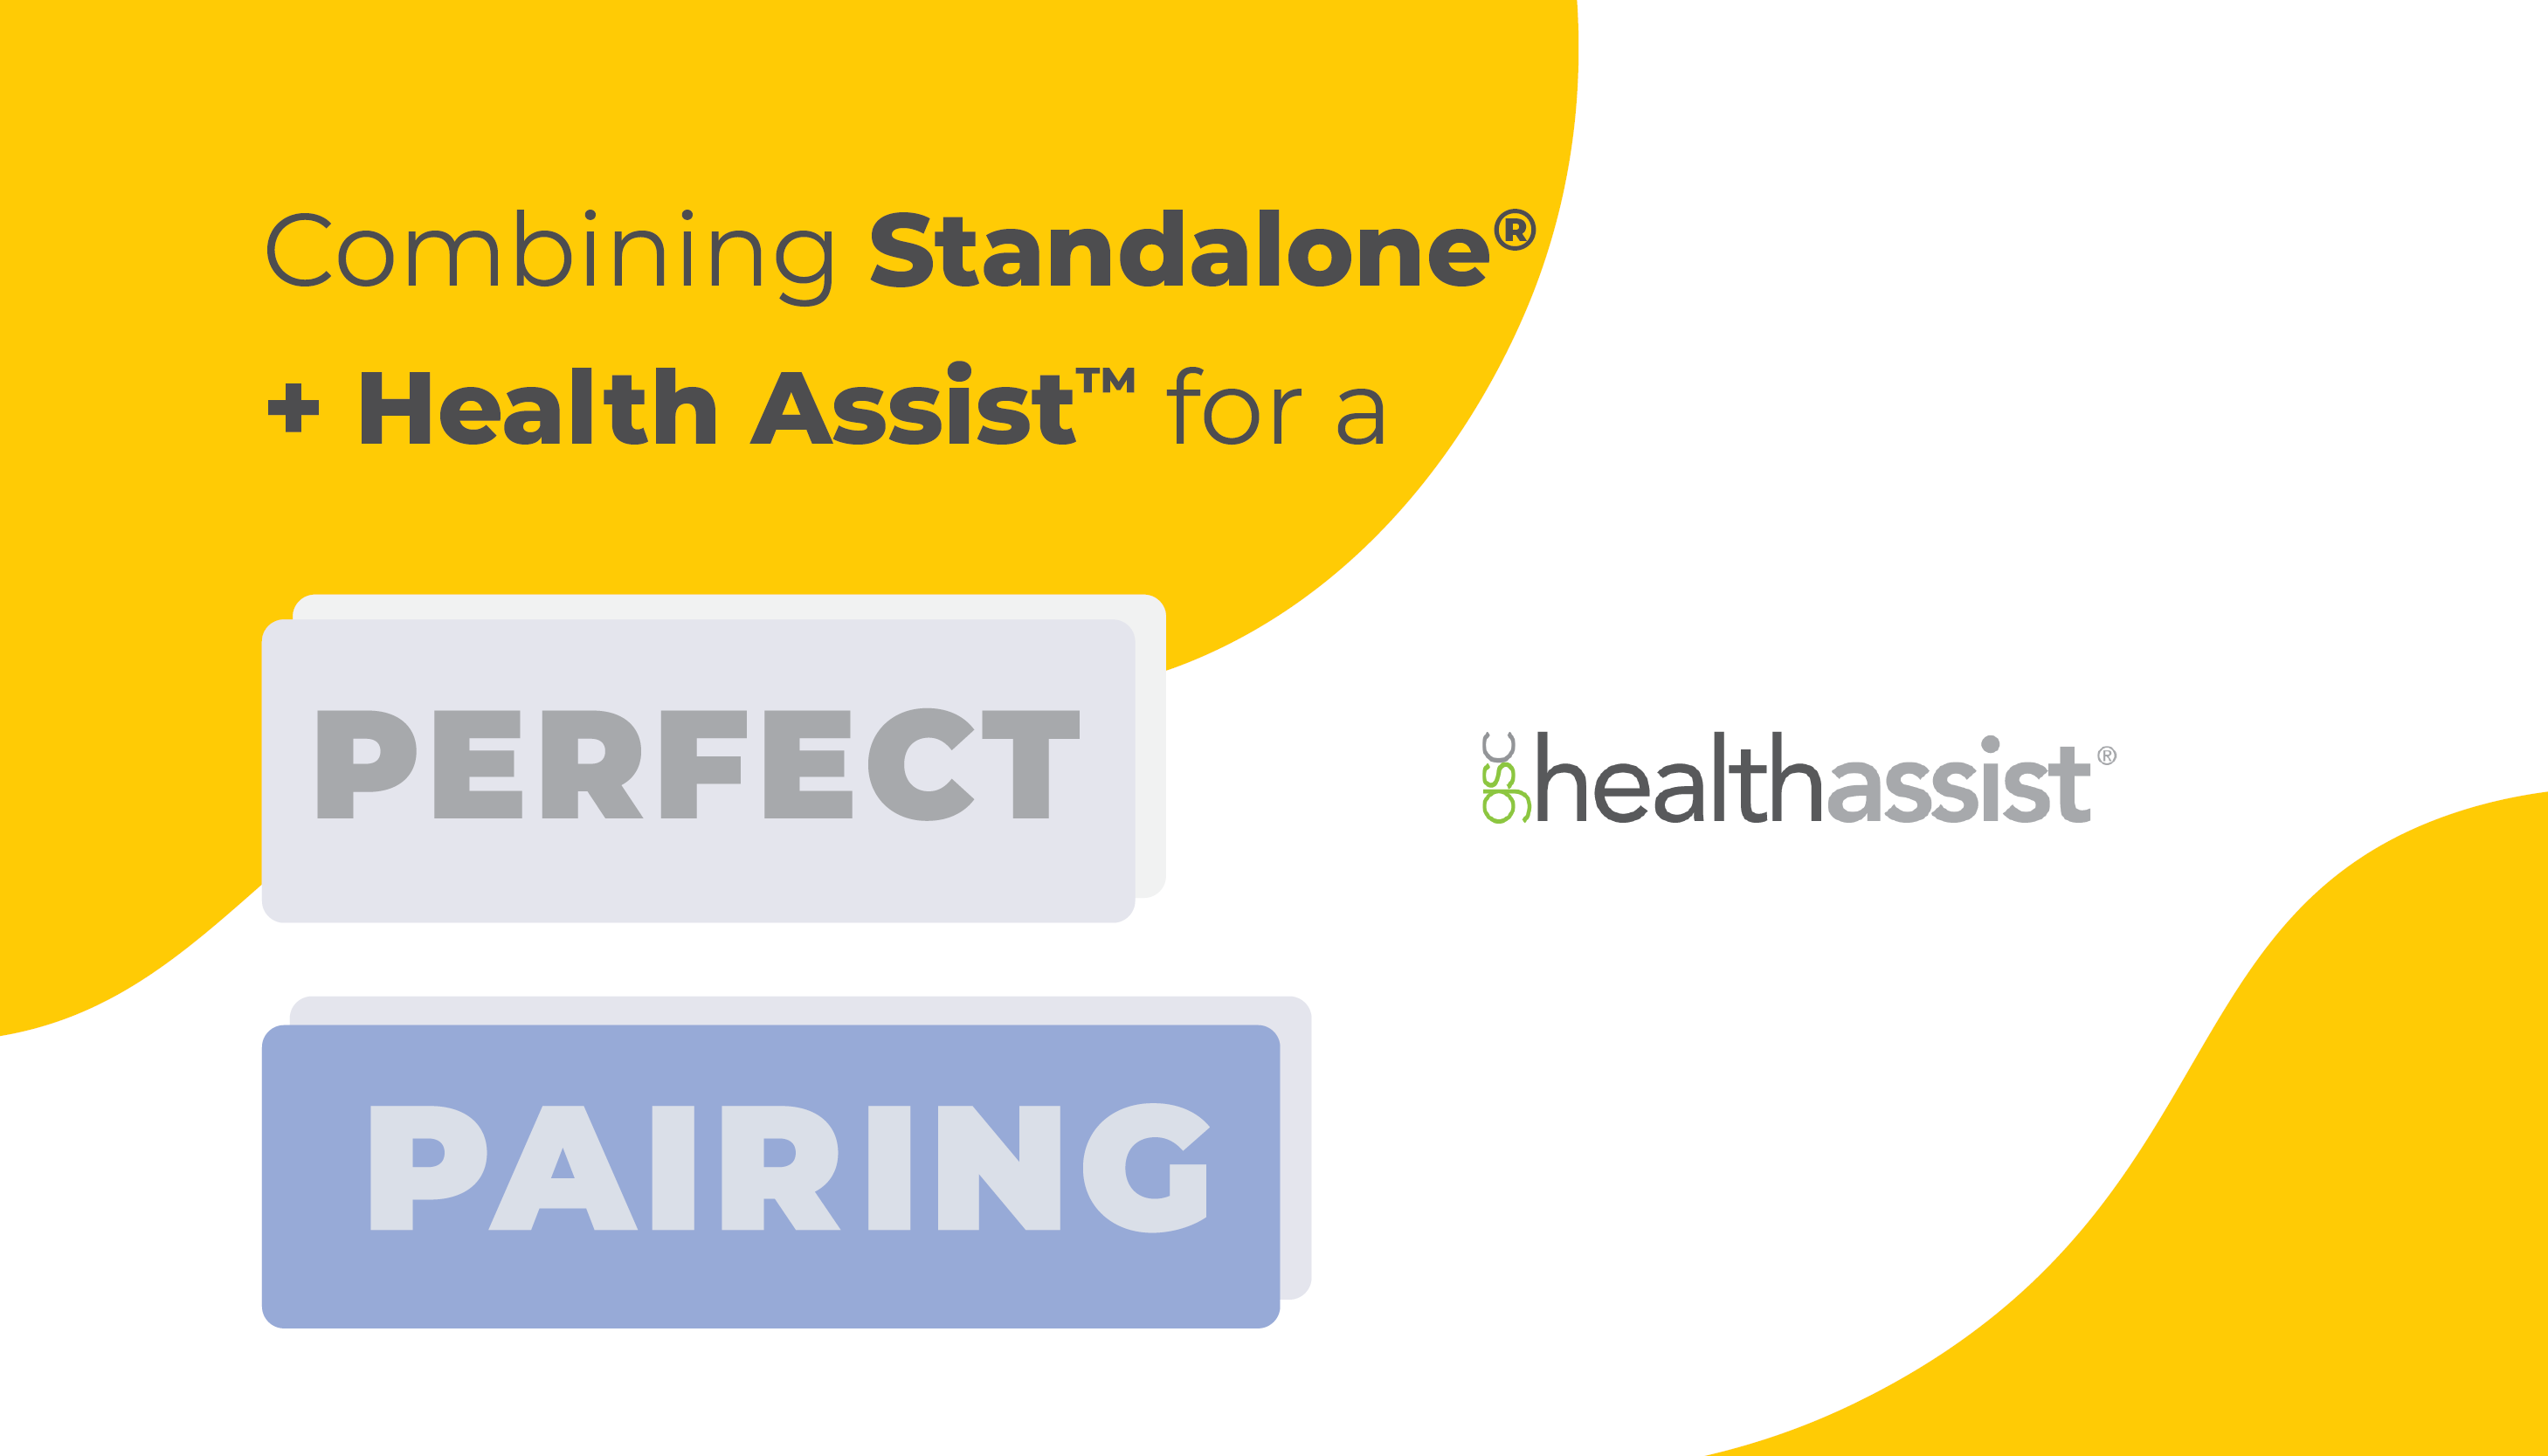 Combining Standalone and Health Assist for a Perfect Pairing